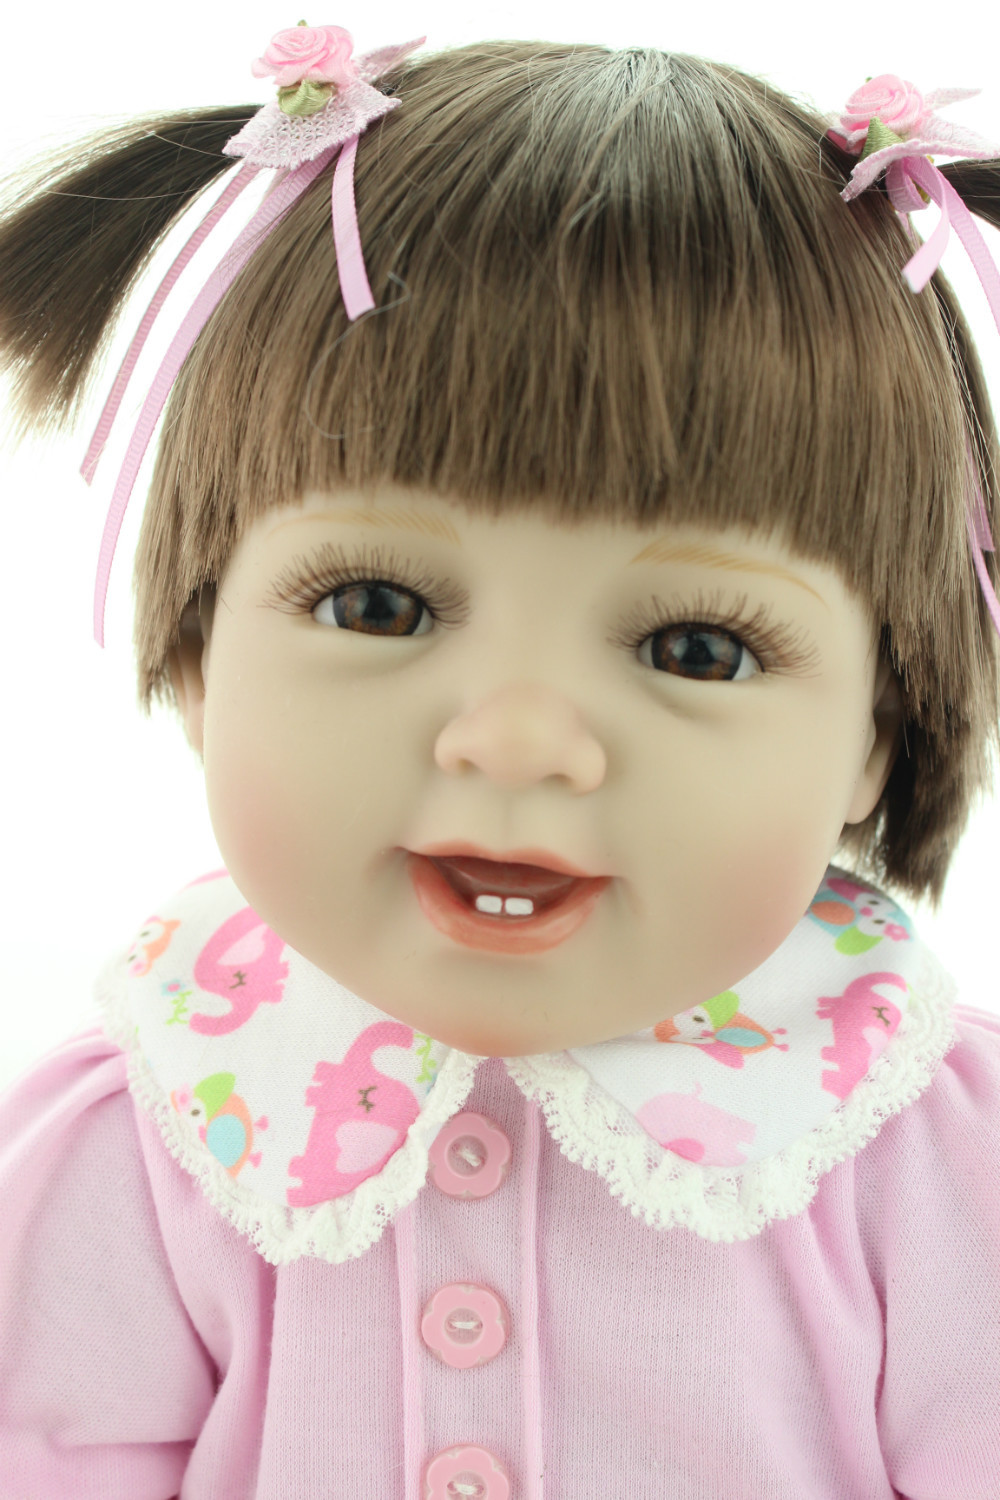 NPKCOLLECTION 2015 NEW hot sale lifelike reborn baby doll rooted human hair fashion doll Christmas gift lovely gifts kids toysNPKCOLLECTION 2015 NEW hot sale lifelike reborn baby doll rooted human hair fashion doll Christmas gift lovely gifts kids toys